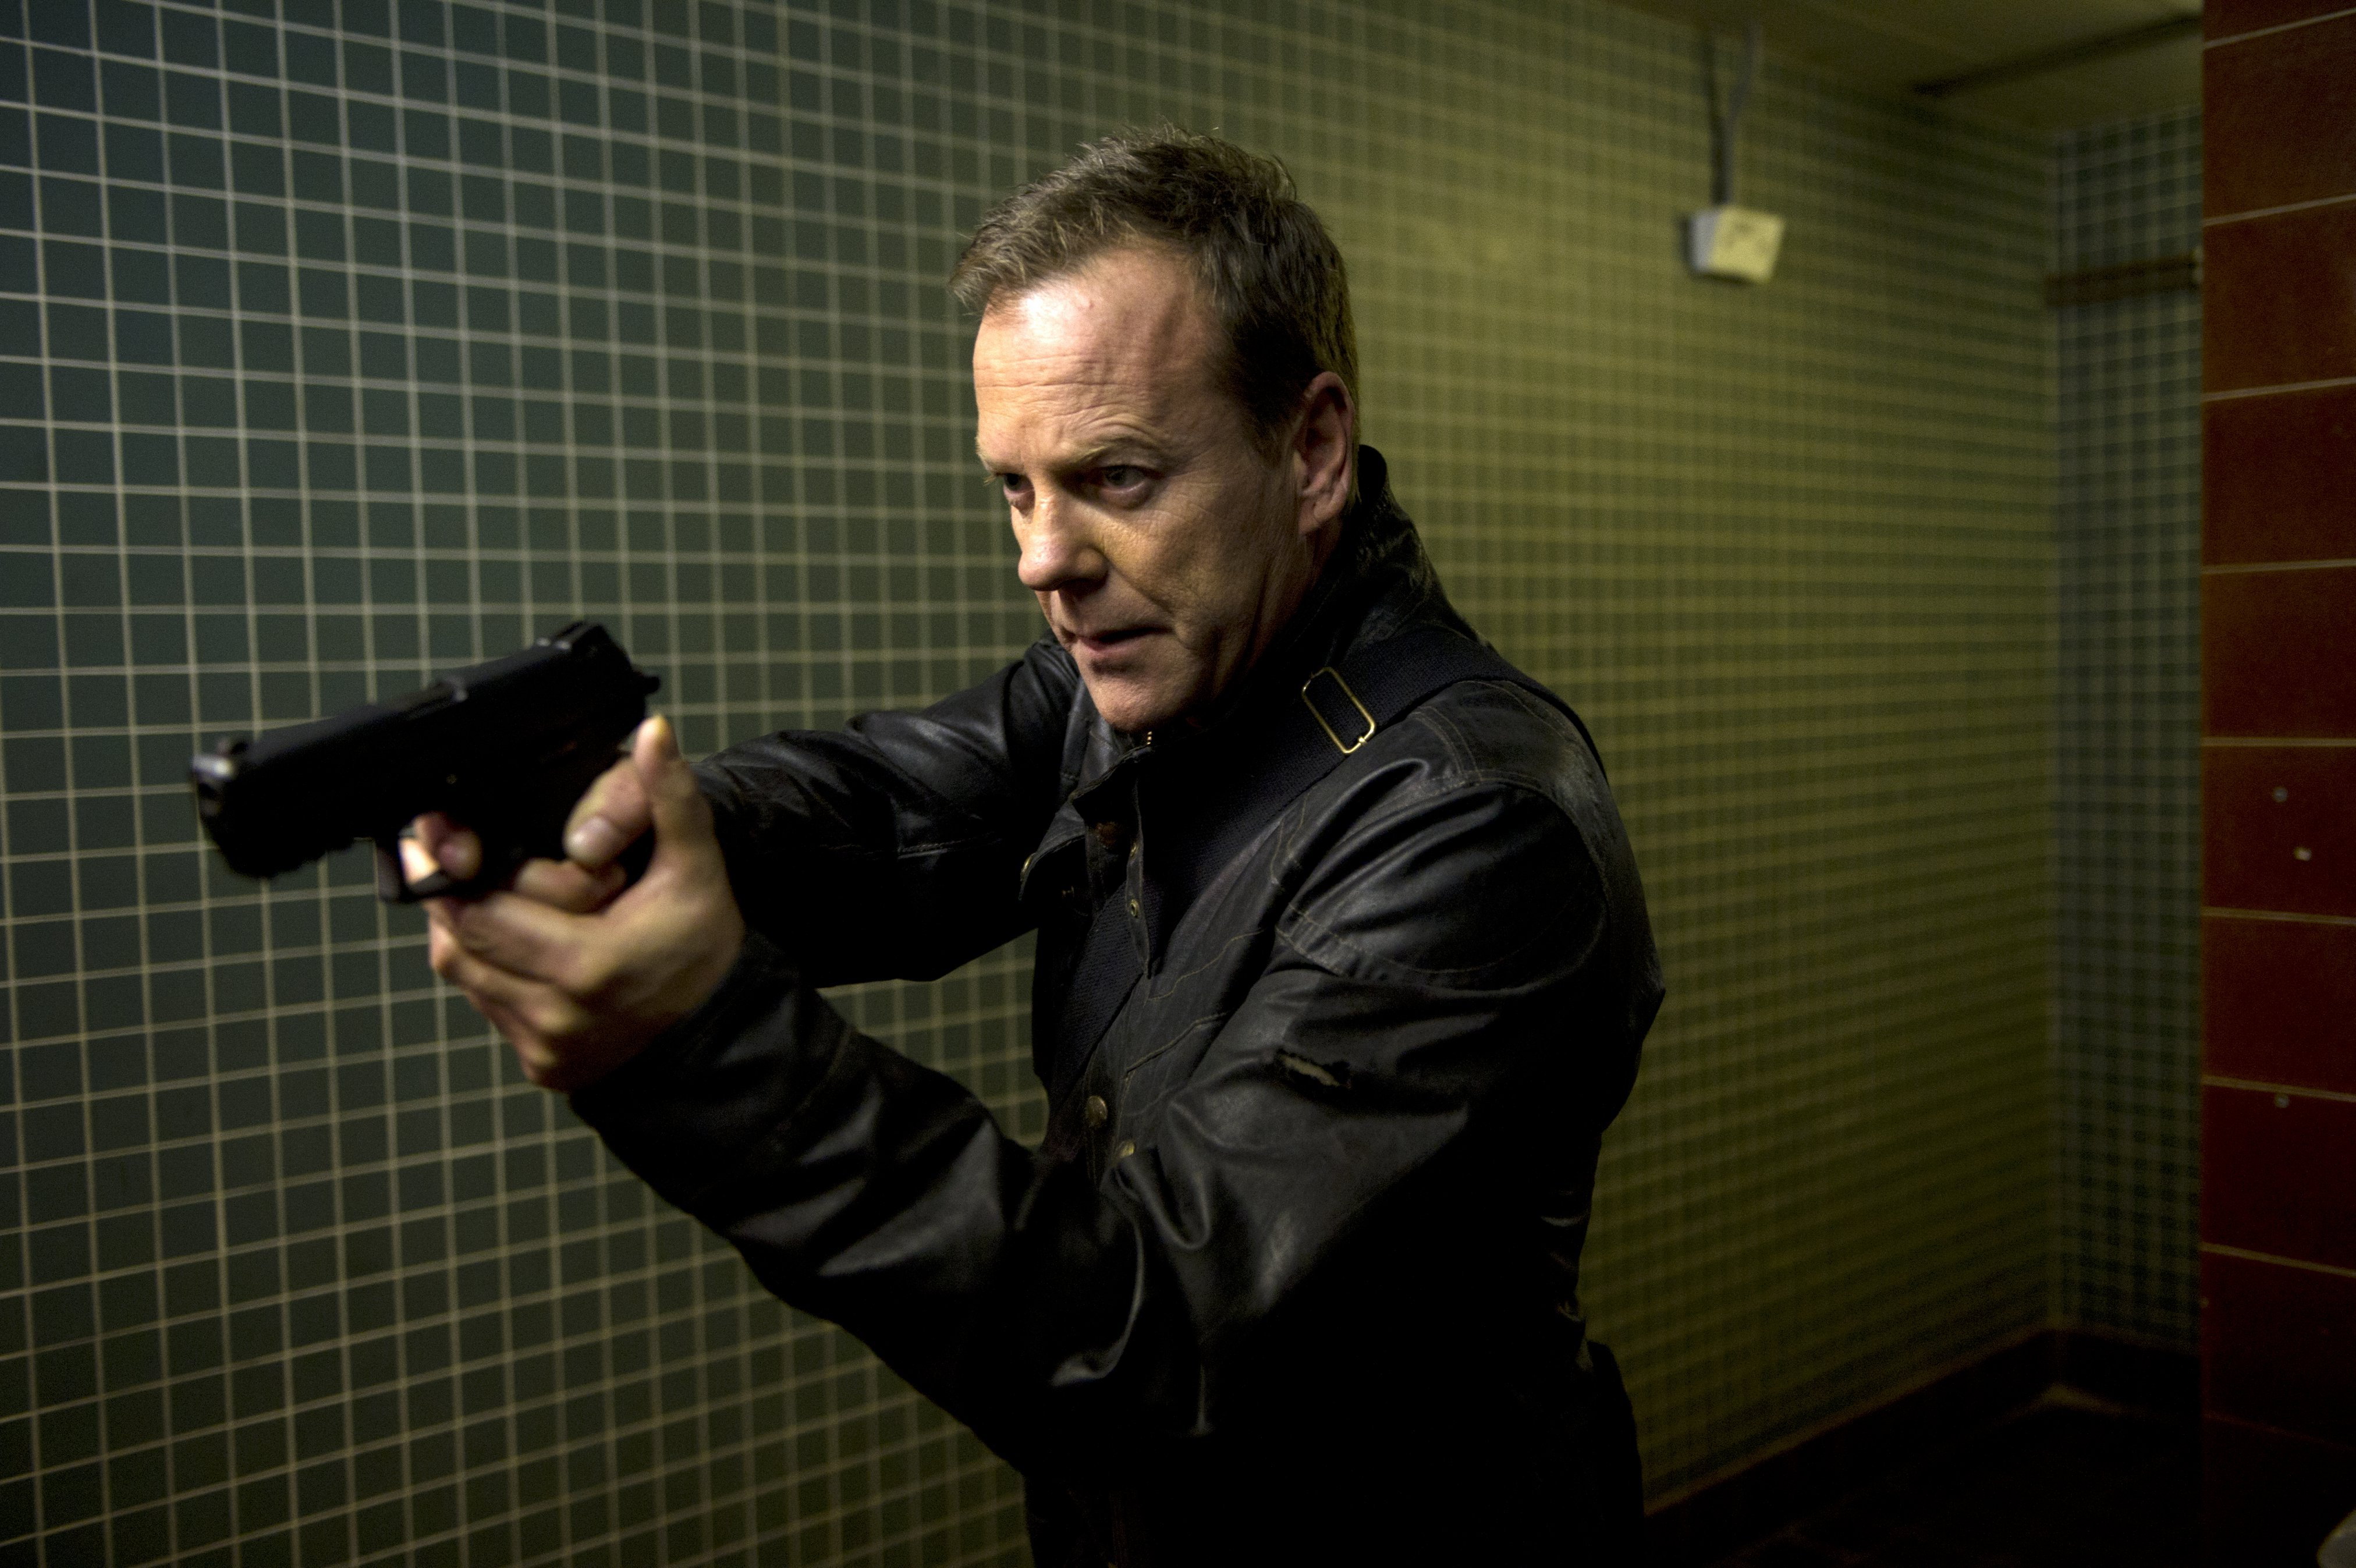 Photo 24: Live Another Day Kiefer Sutherland